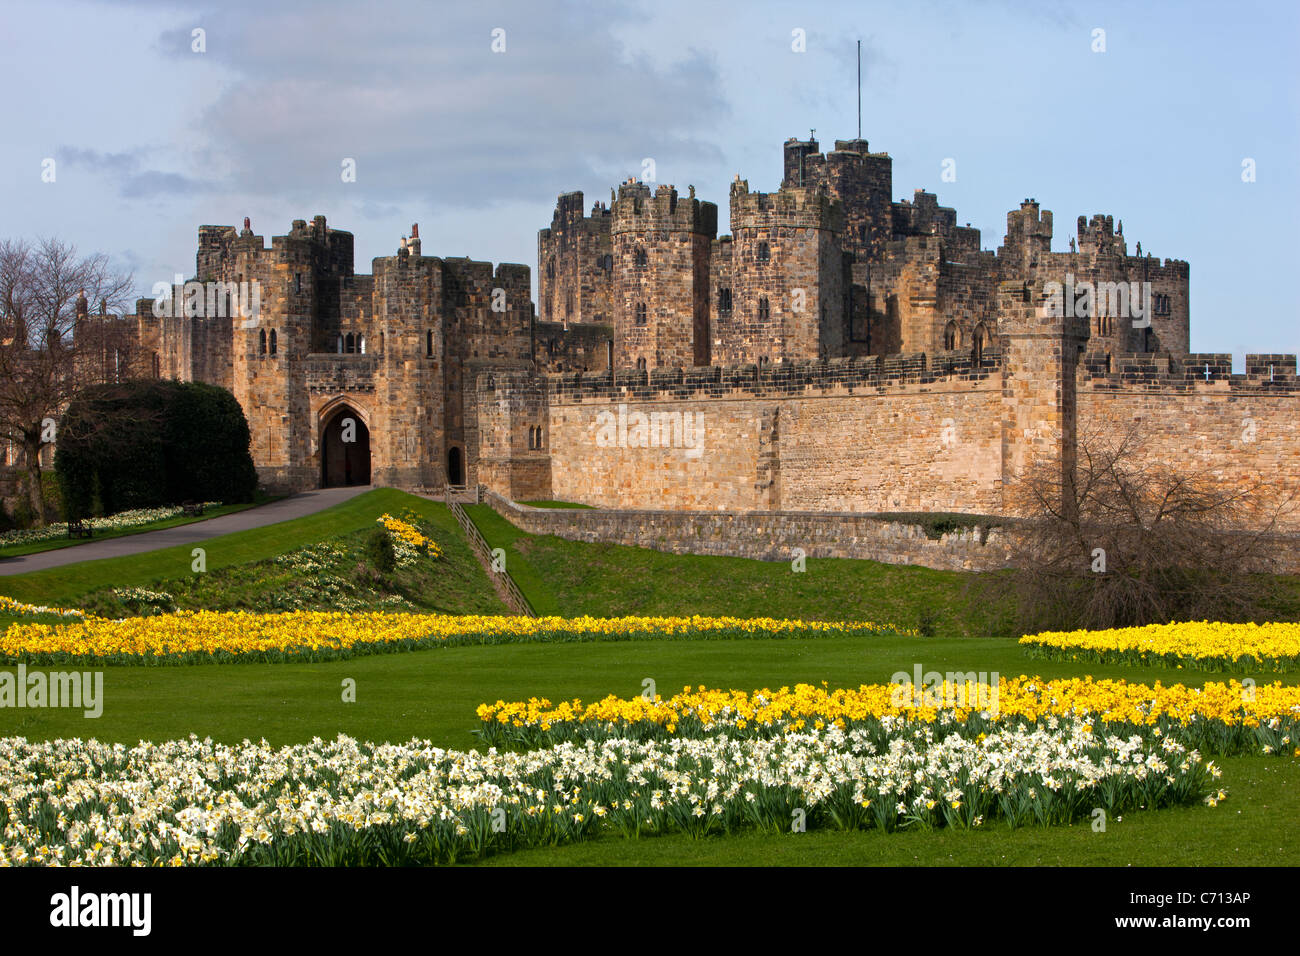 Alnwick Castle, Northumberland, in Spring with daffodils - Stock Image